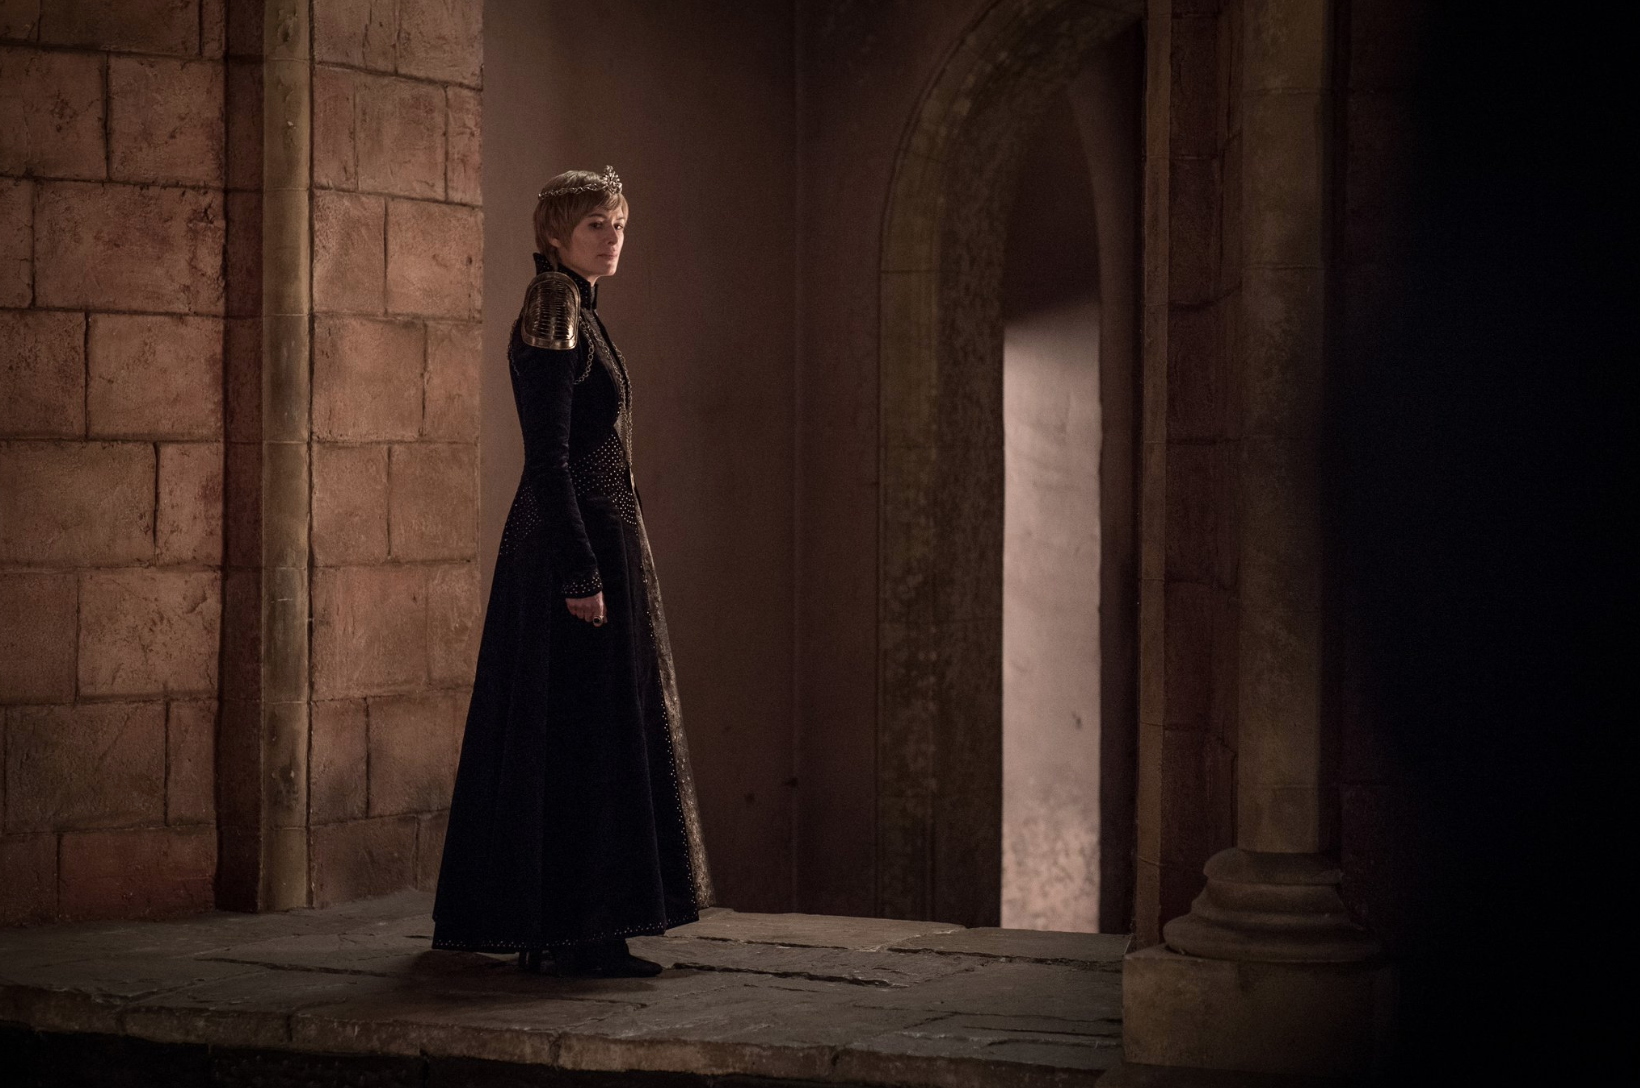 All alone in her castle. Credit: HBO